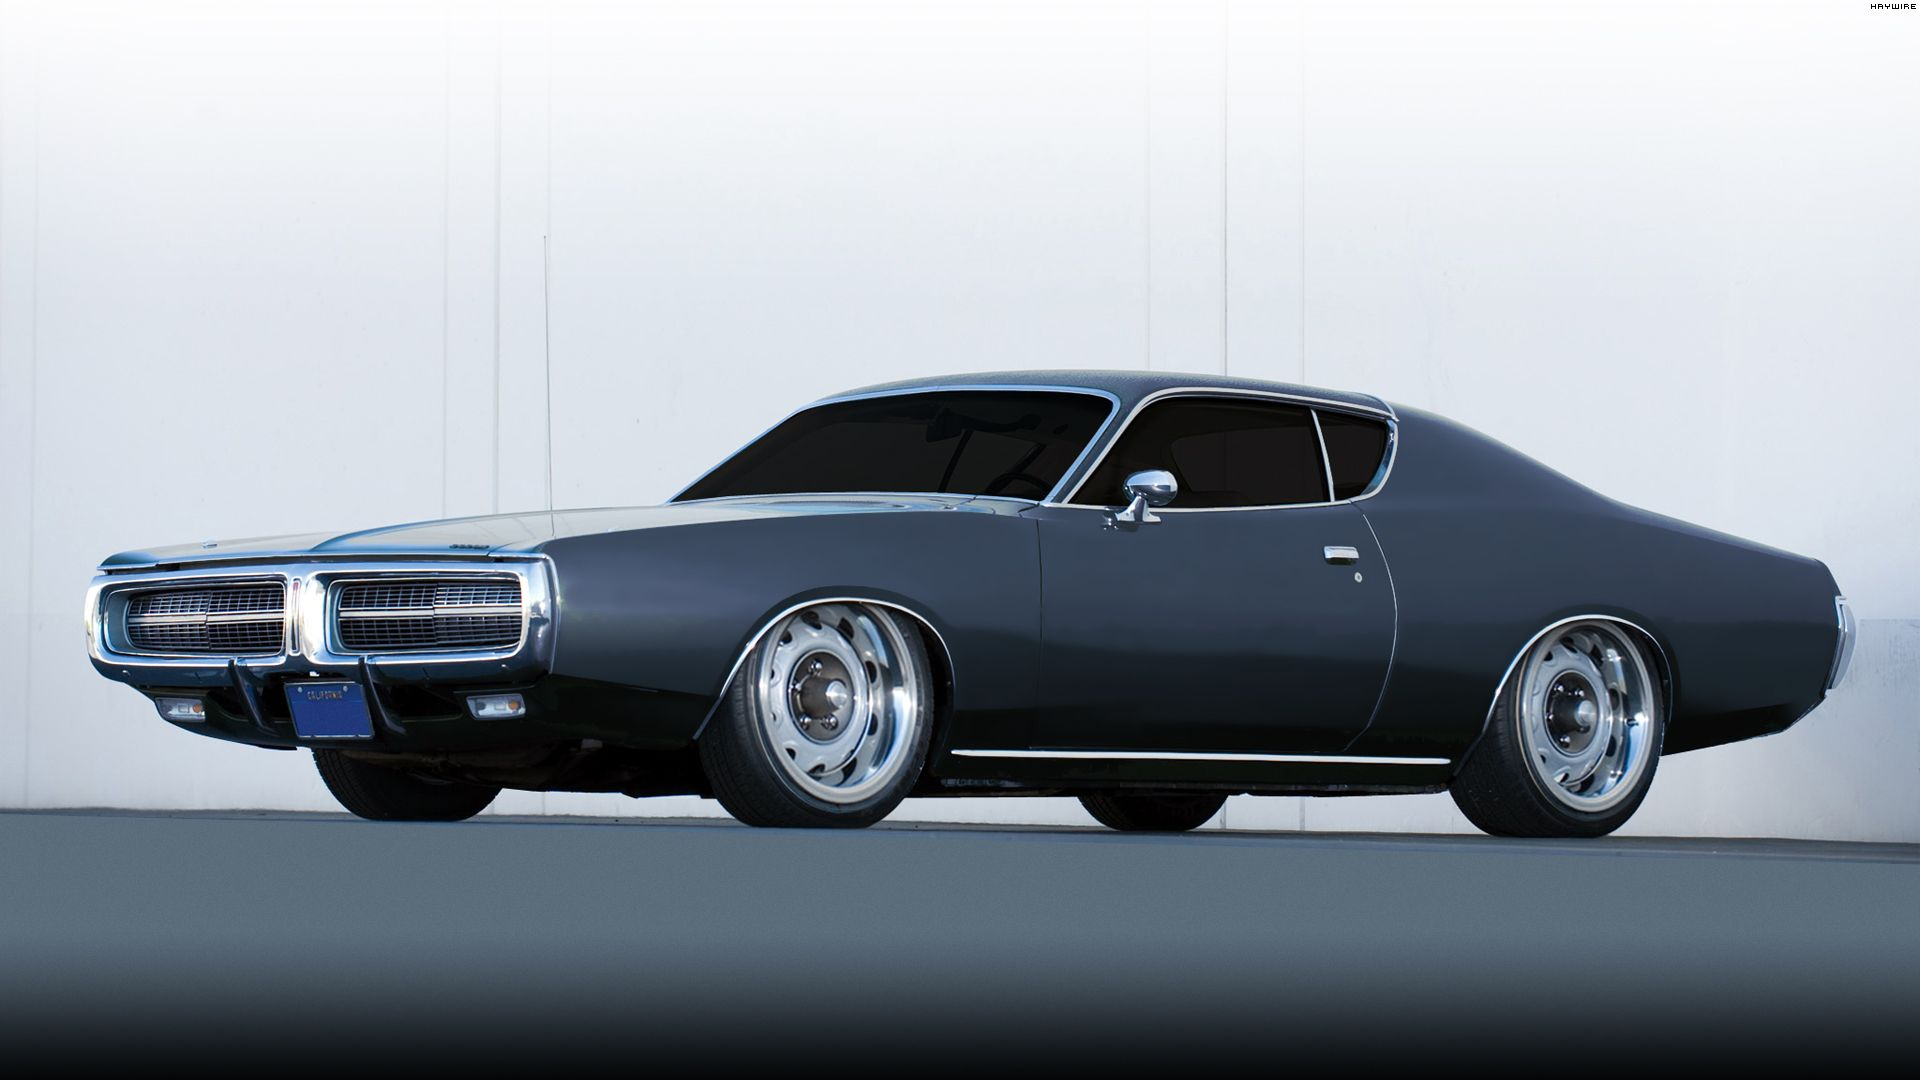 1969 dodge charger headlights wallpaper - photo #33